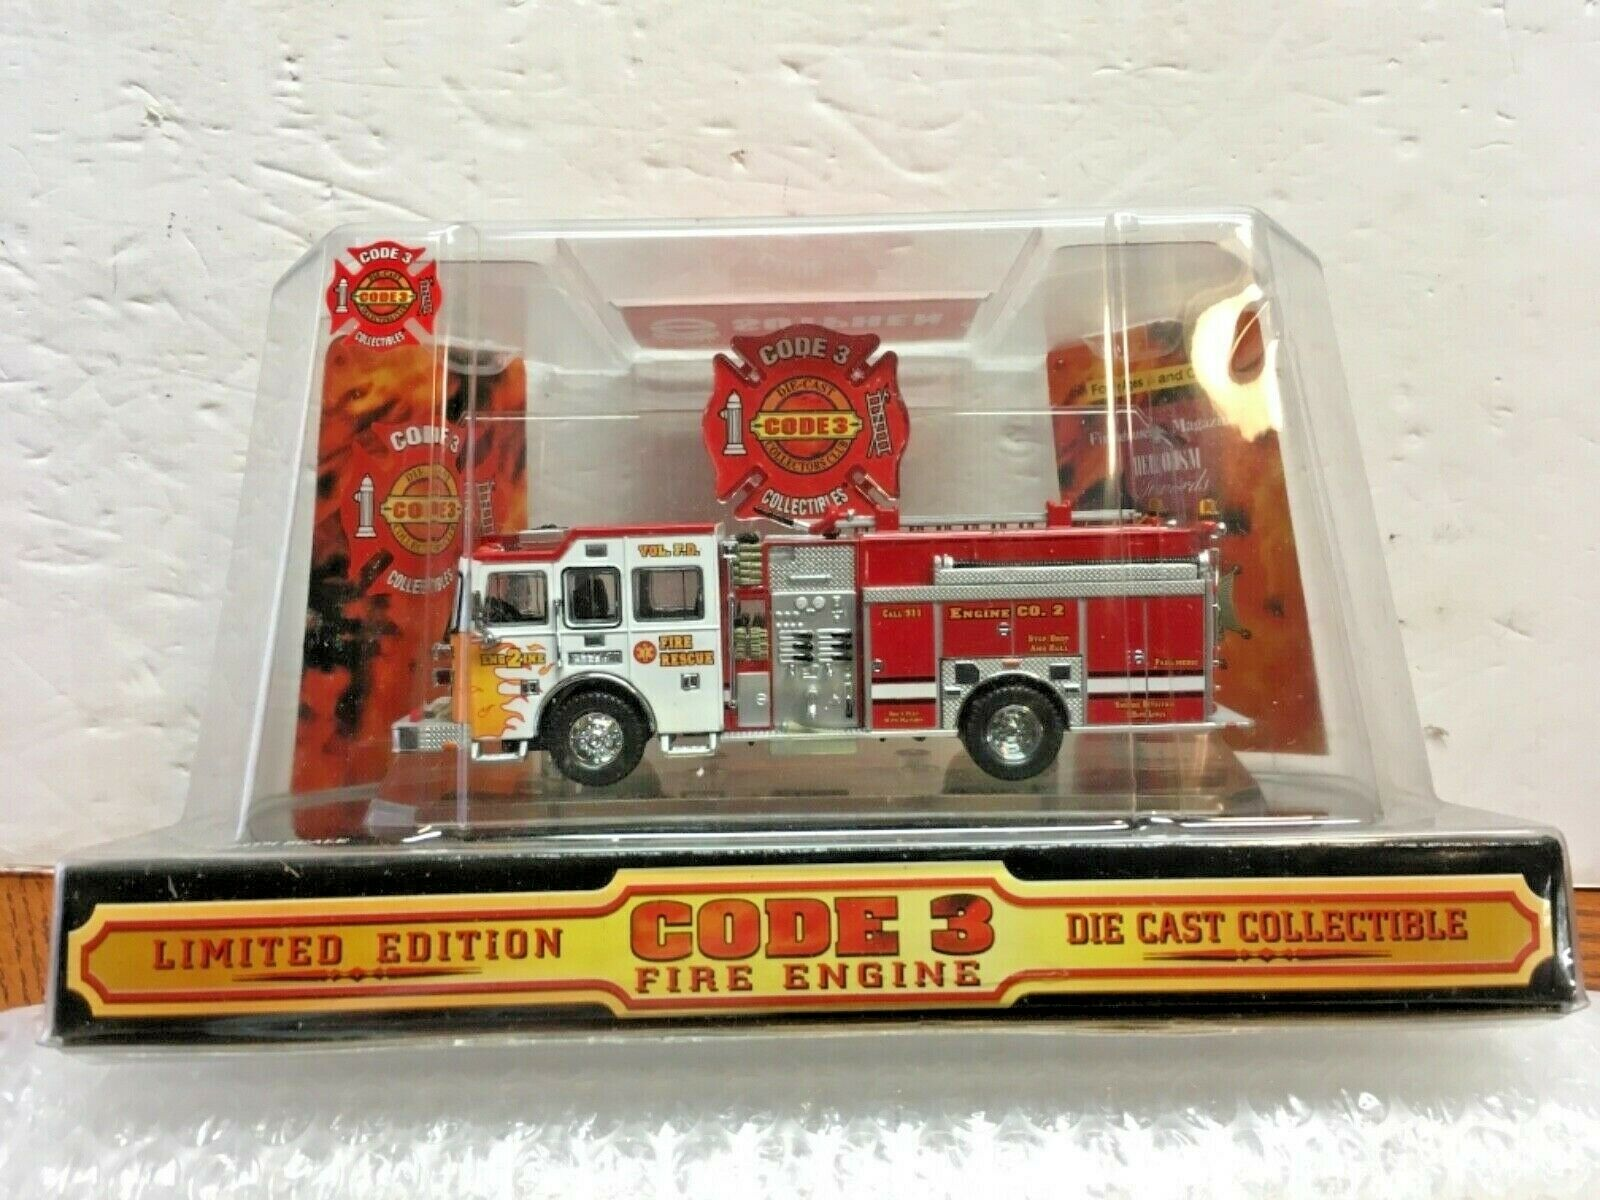 Code 3 Sutphen Fire Rescue Pumper Engine-1 Volunteer Fire Dept. 1 64 Scale